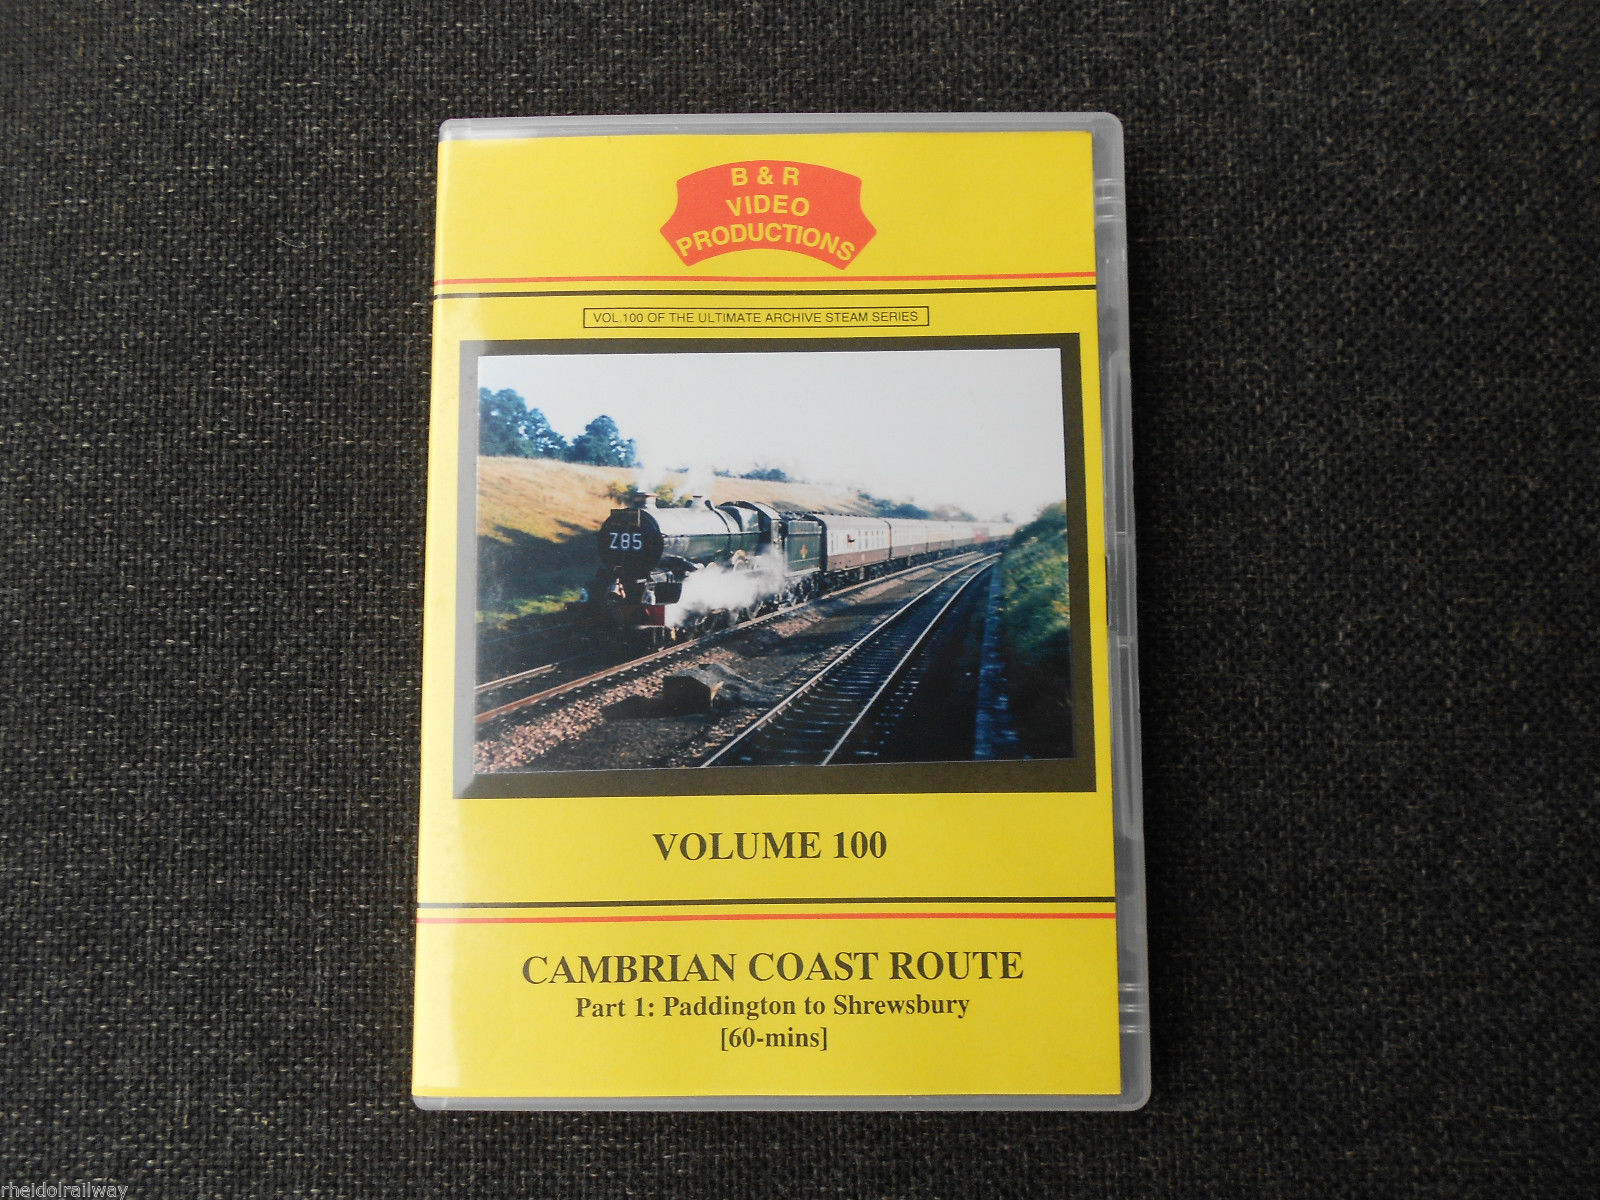 Paddington, Shrewsbury, Talerddig, Cambrian Coast Route Part 1 B&R Vol100 DVD